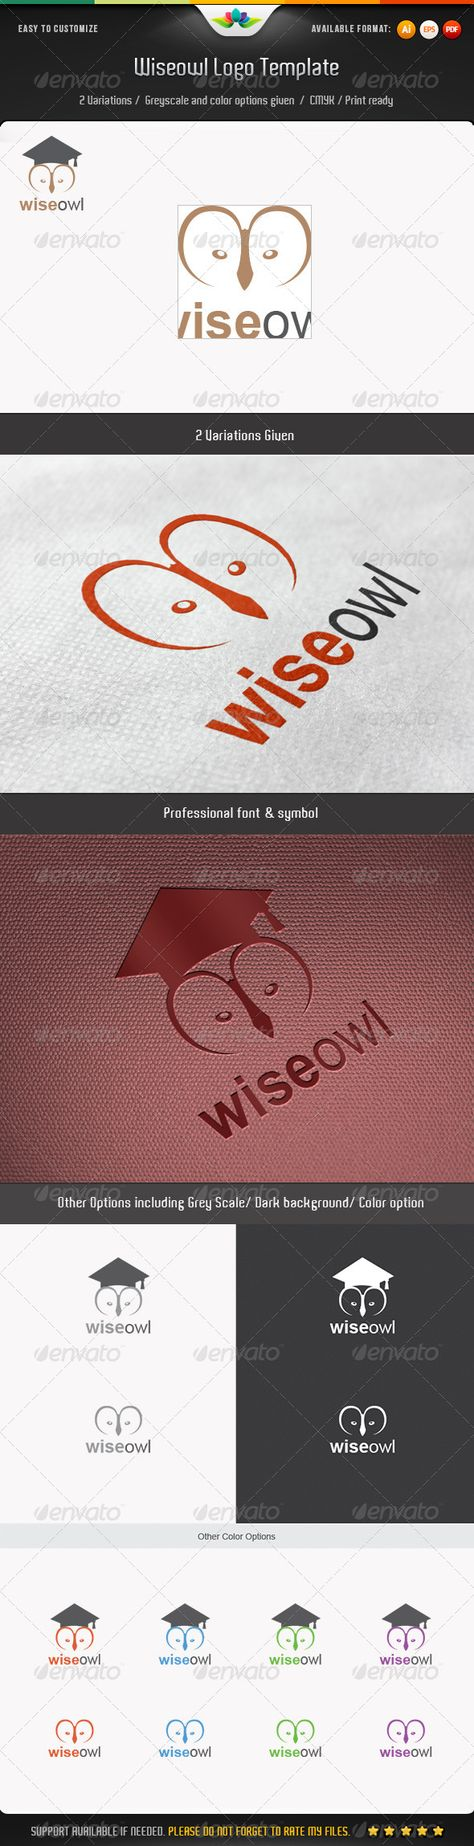 Wiseowl Logo Template